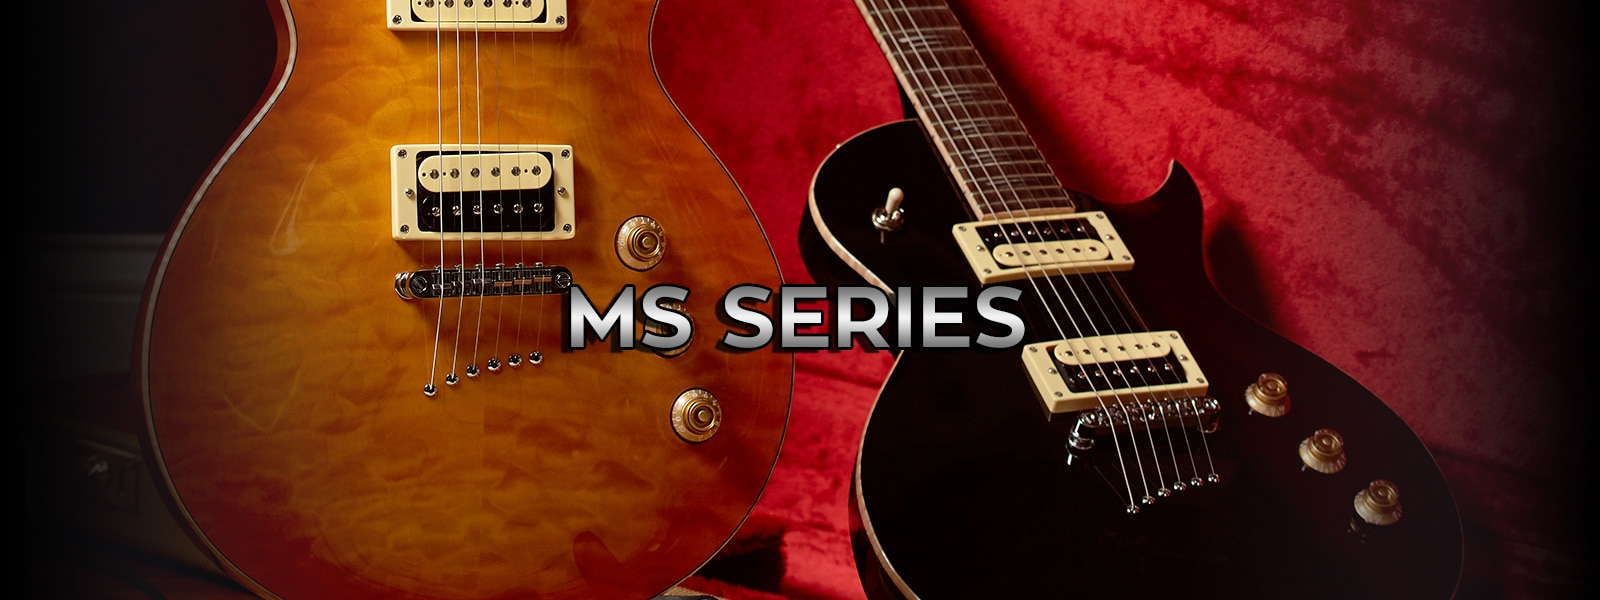 Mitchell MS Series Electric guitars